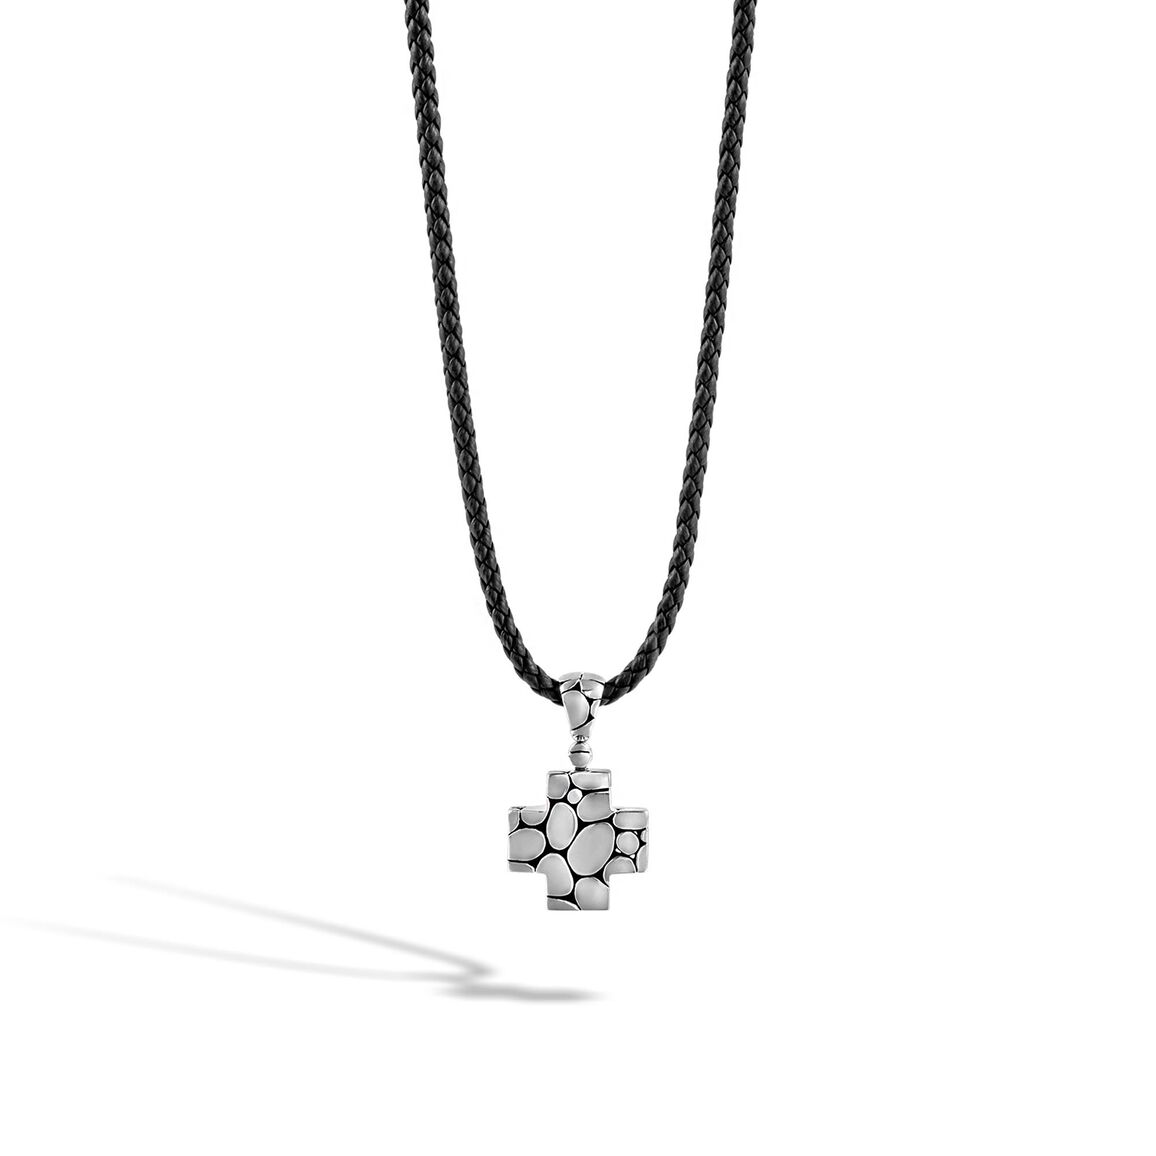 Kali Cross Necklace in Silver and Leather